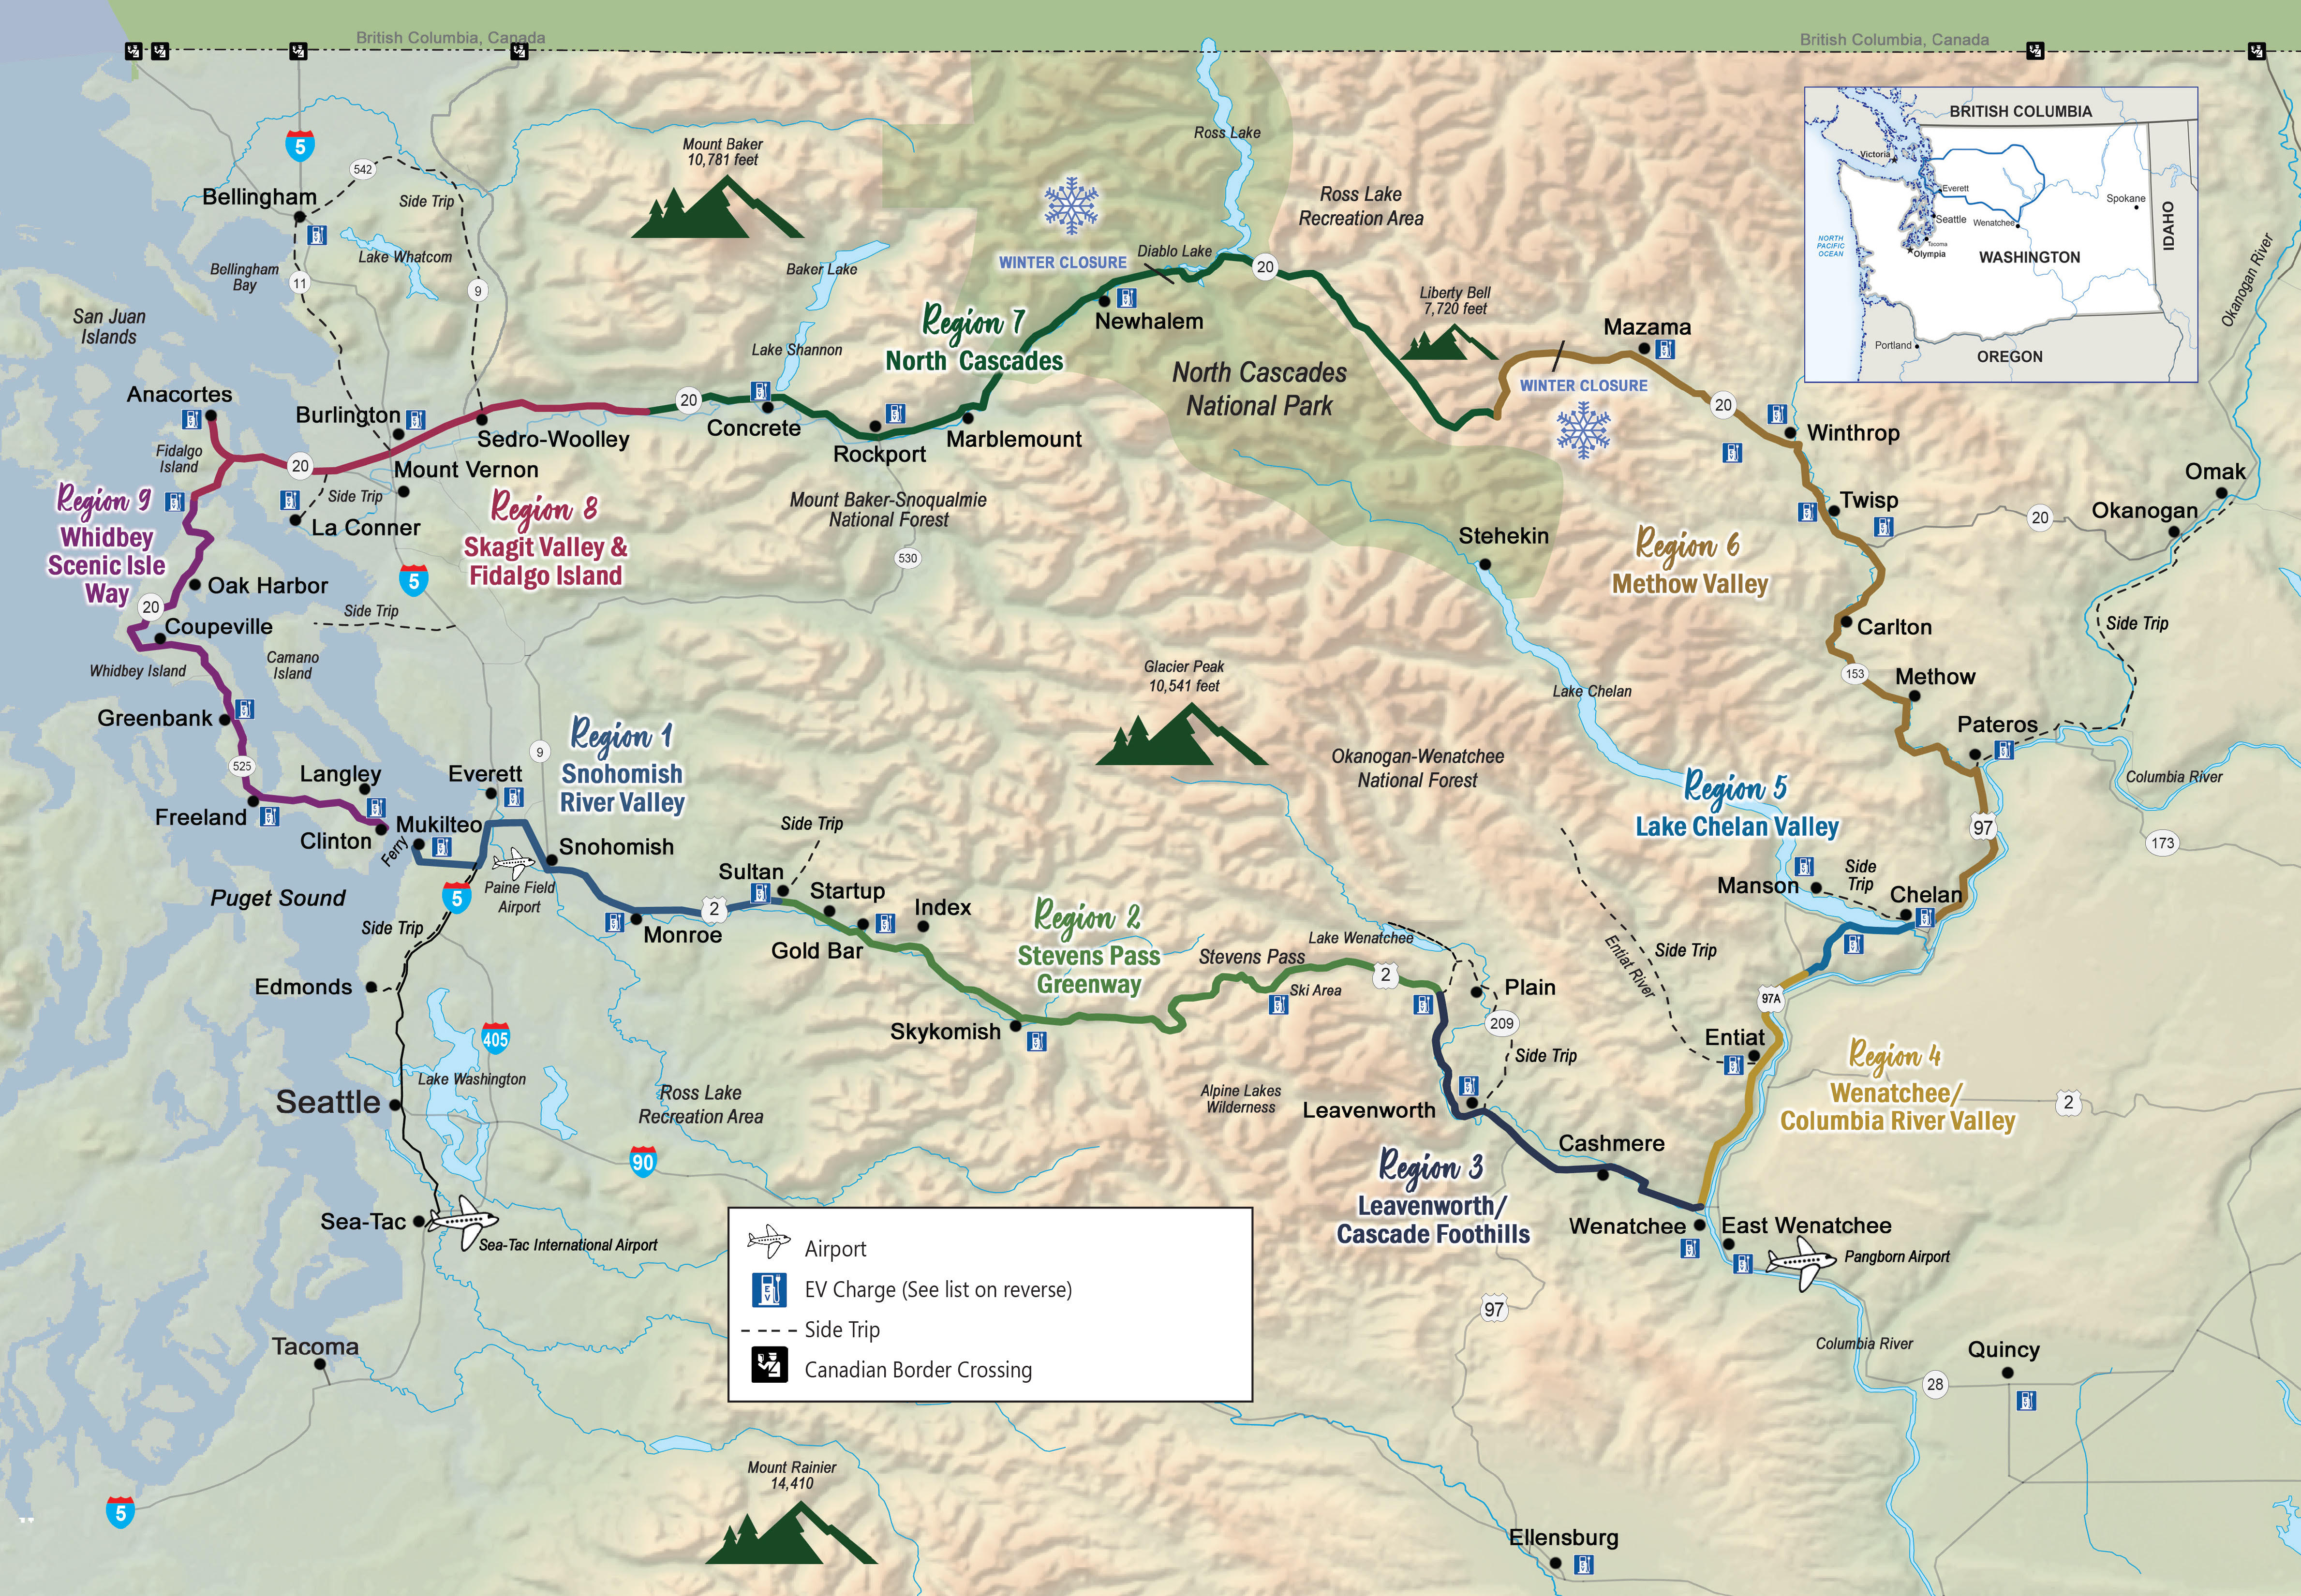 Washington\'s Ultimate Road Trip - The Cascade Loop Scenic Byway